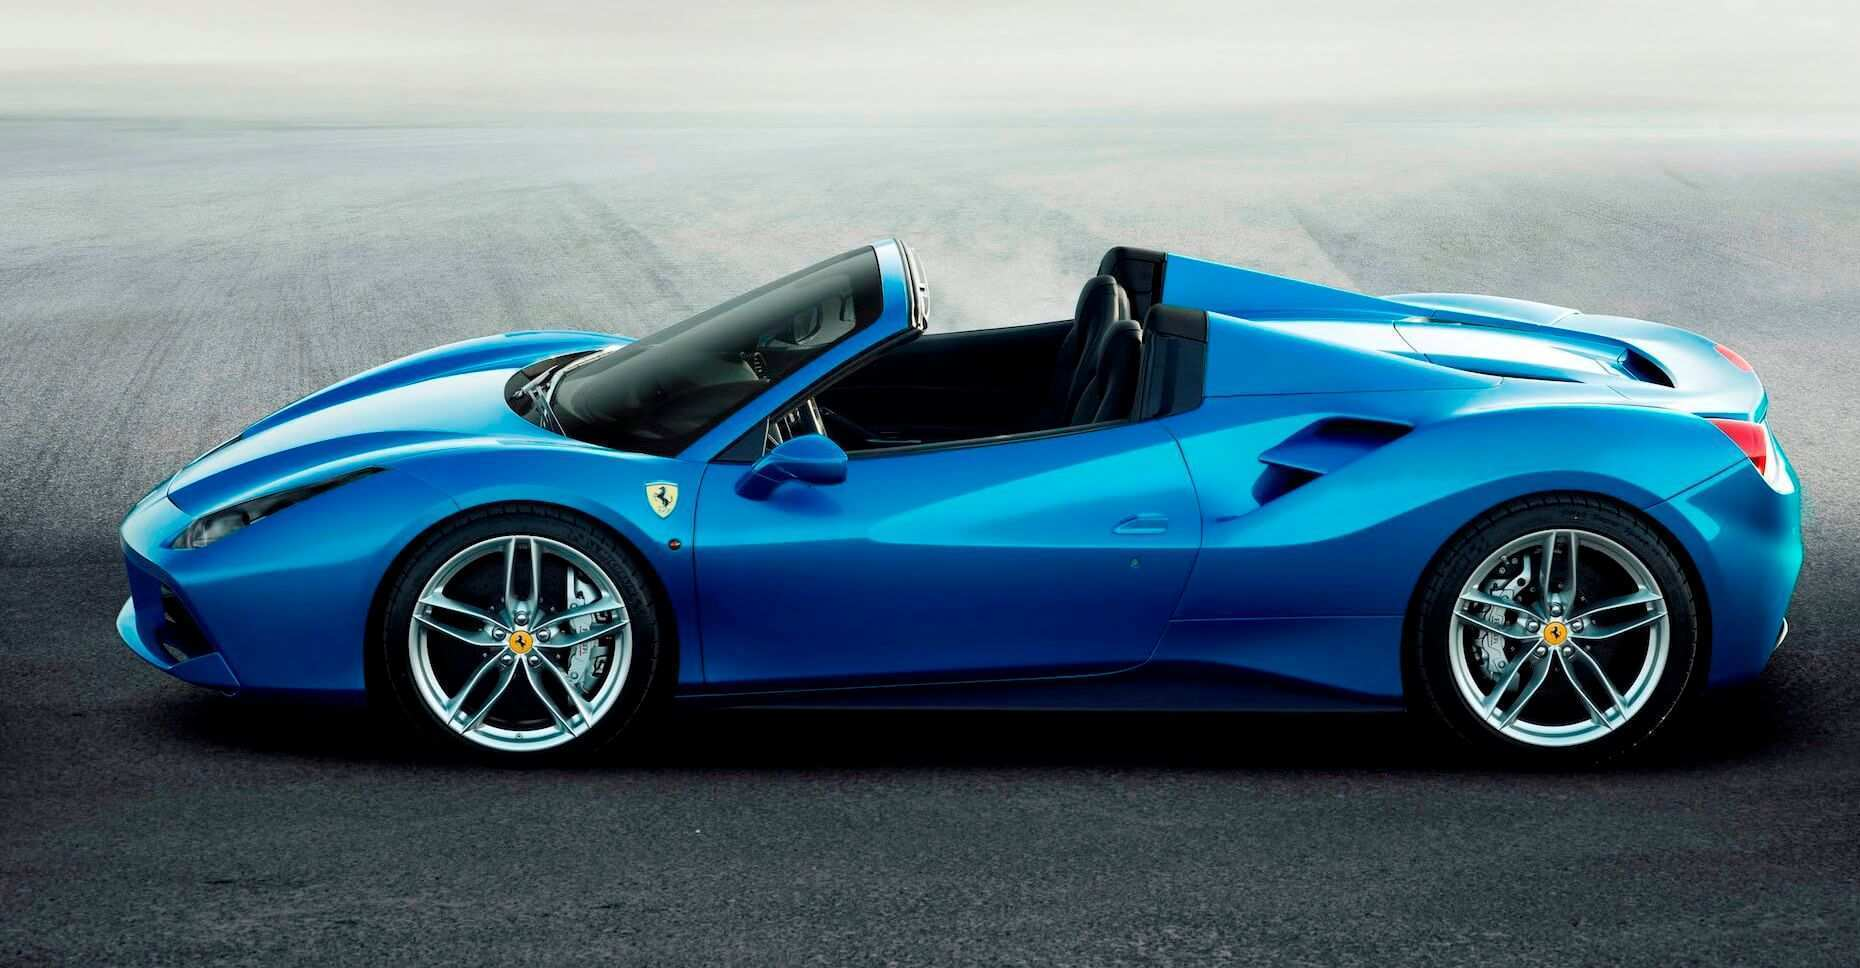 56 New 2020 Ferrari 488 Spider Exterior Review for 2020 Ferrari 488 Spider Exterior